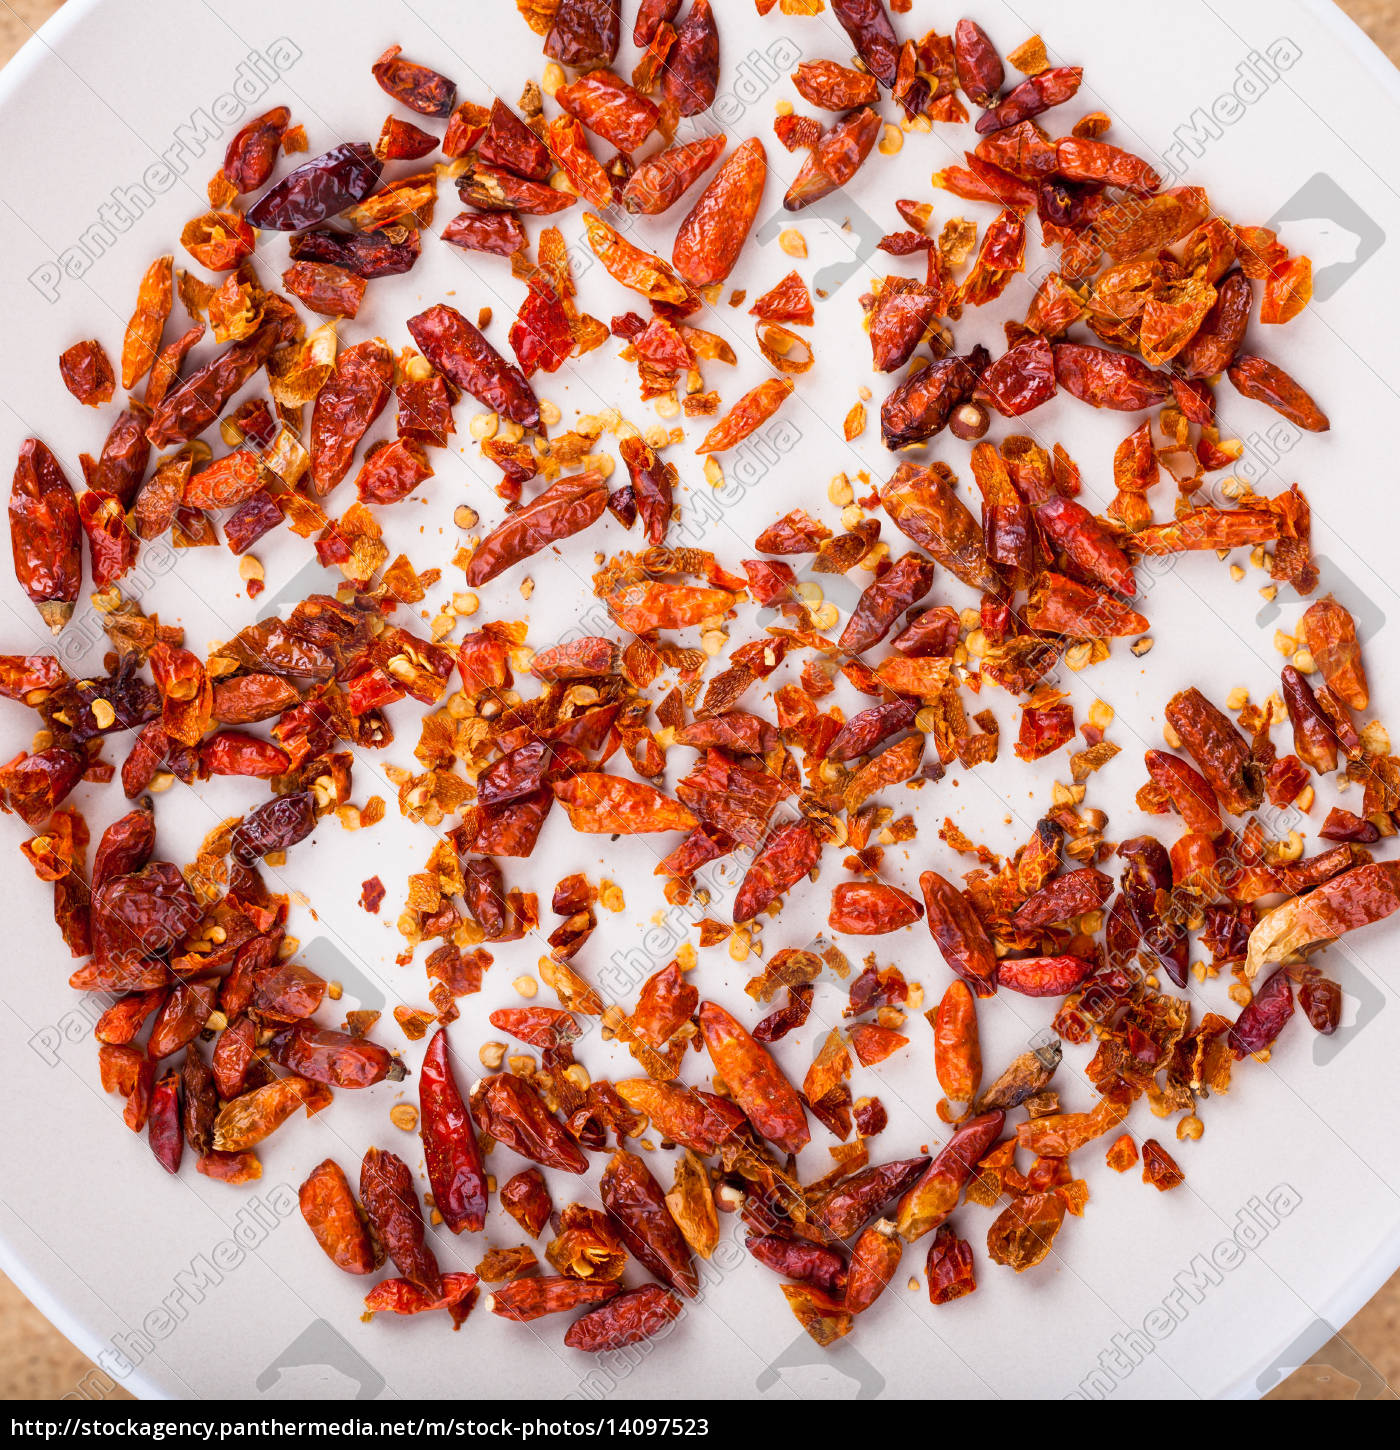 dried, chili, peppers - 14097523